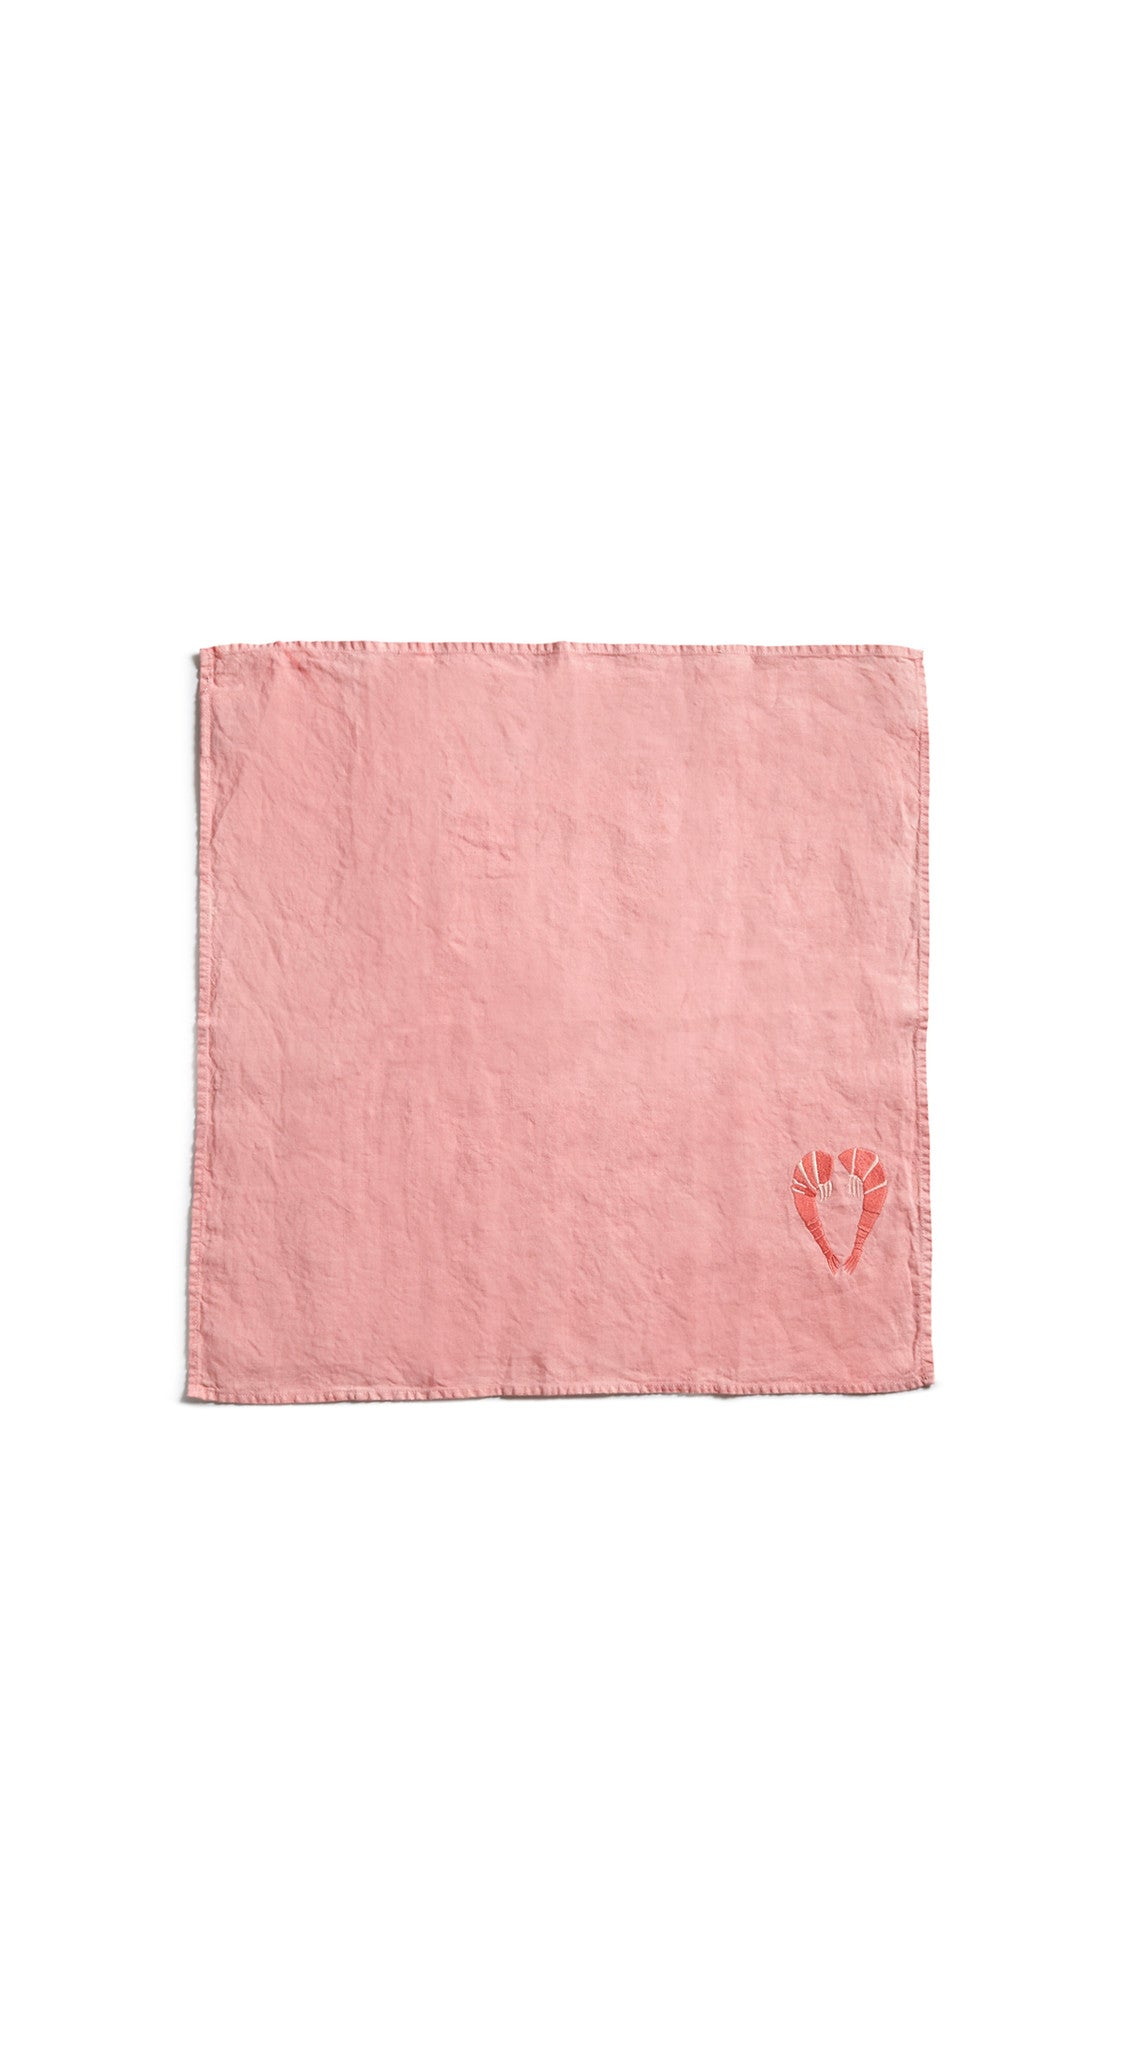 S&B x Shrimps Napkin in Powder Pink